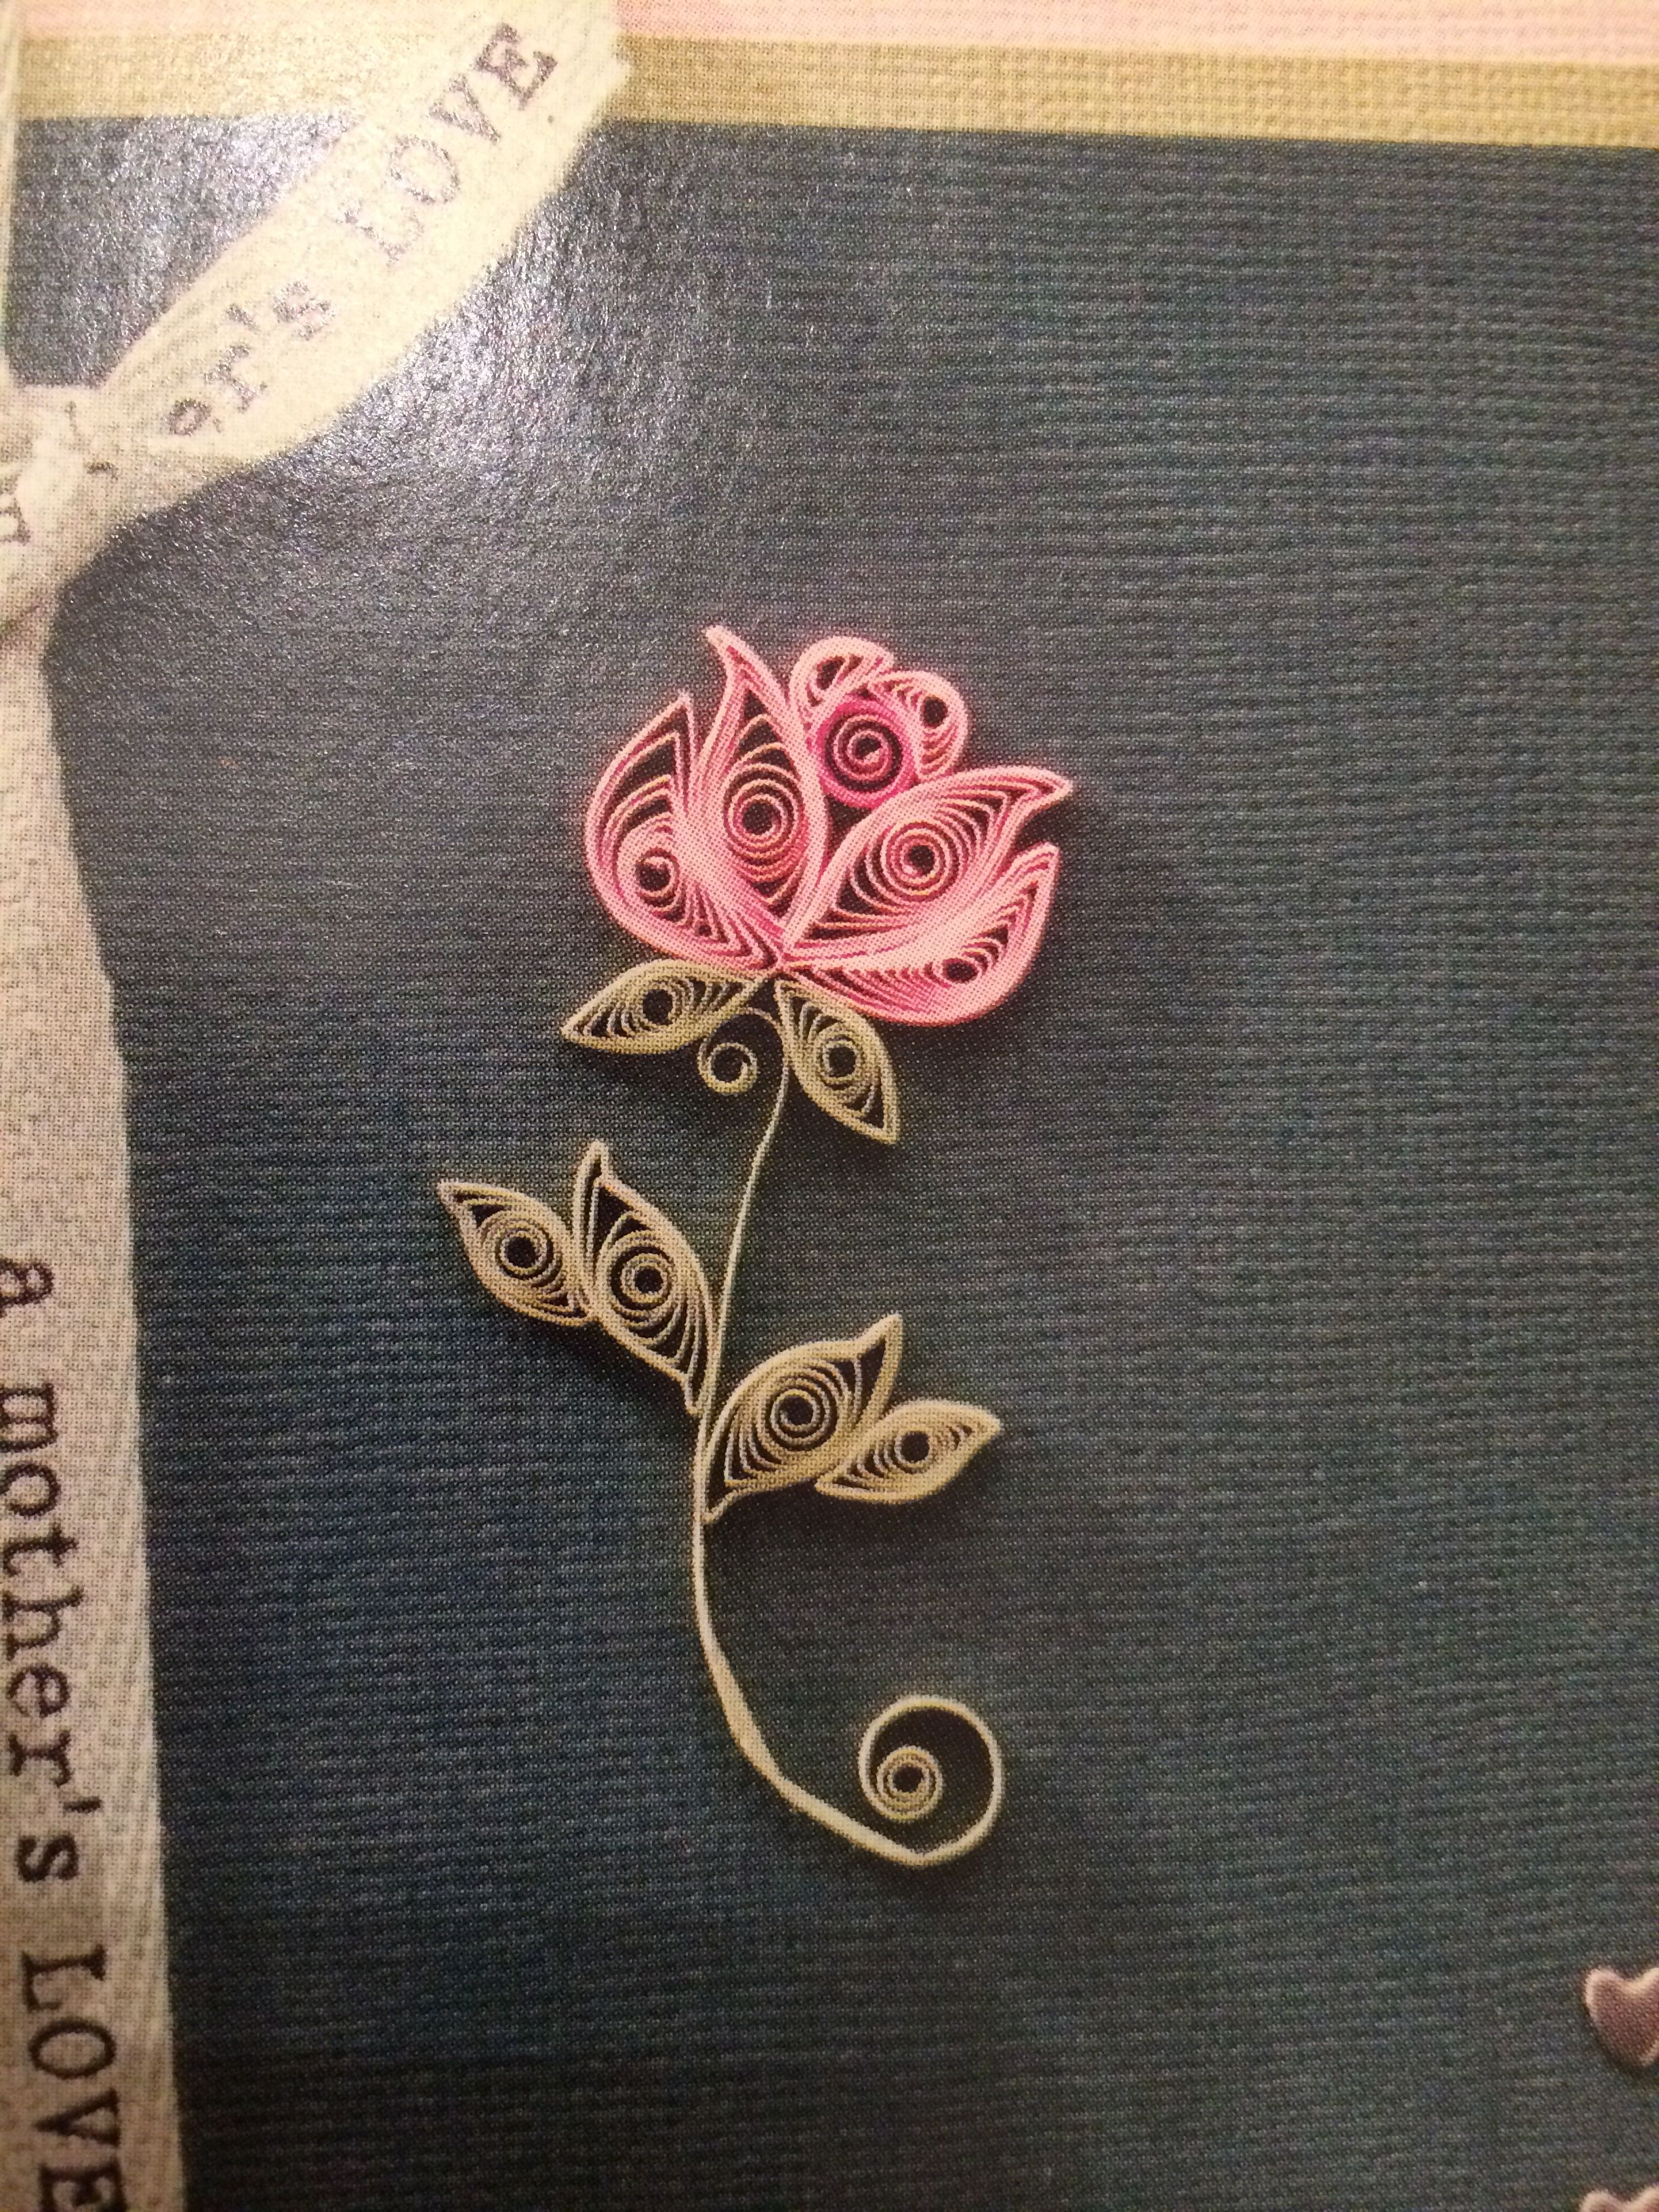 Simple Elegant Flower More Crafting Diy Center Card Making